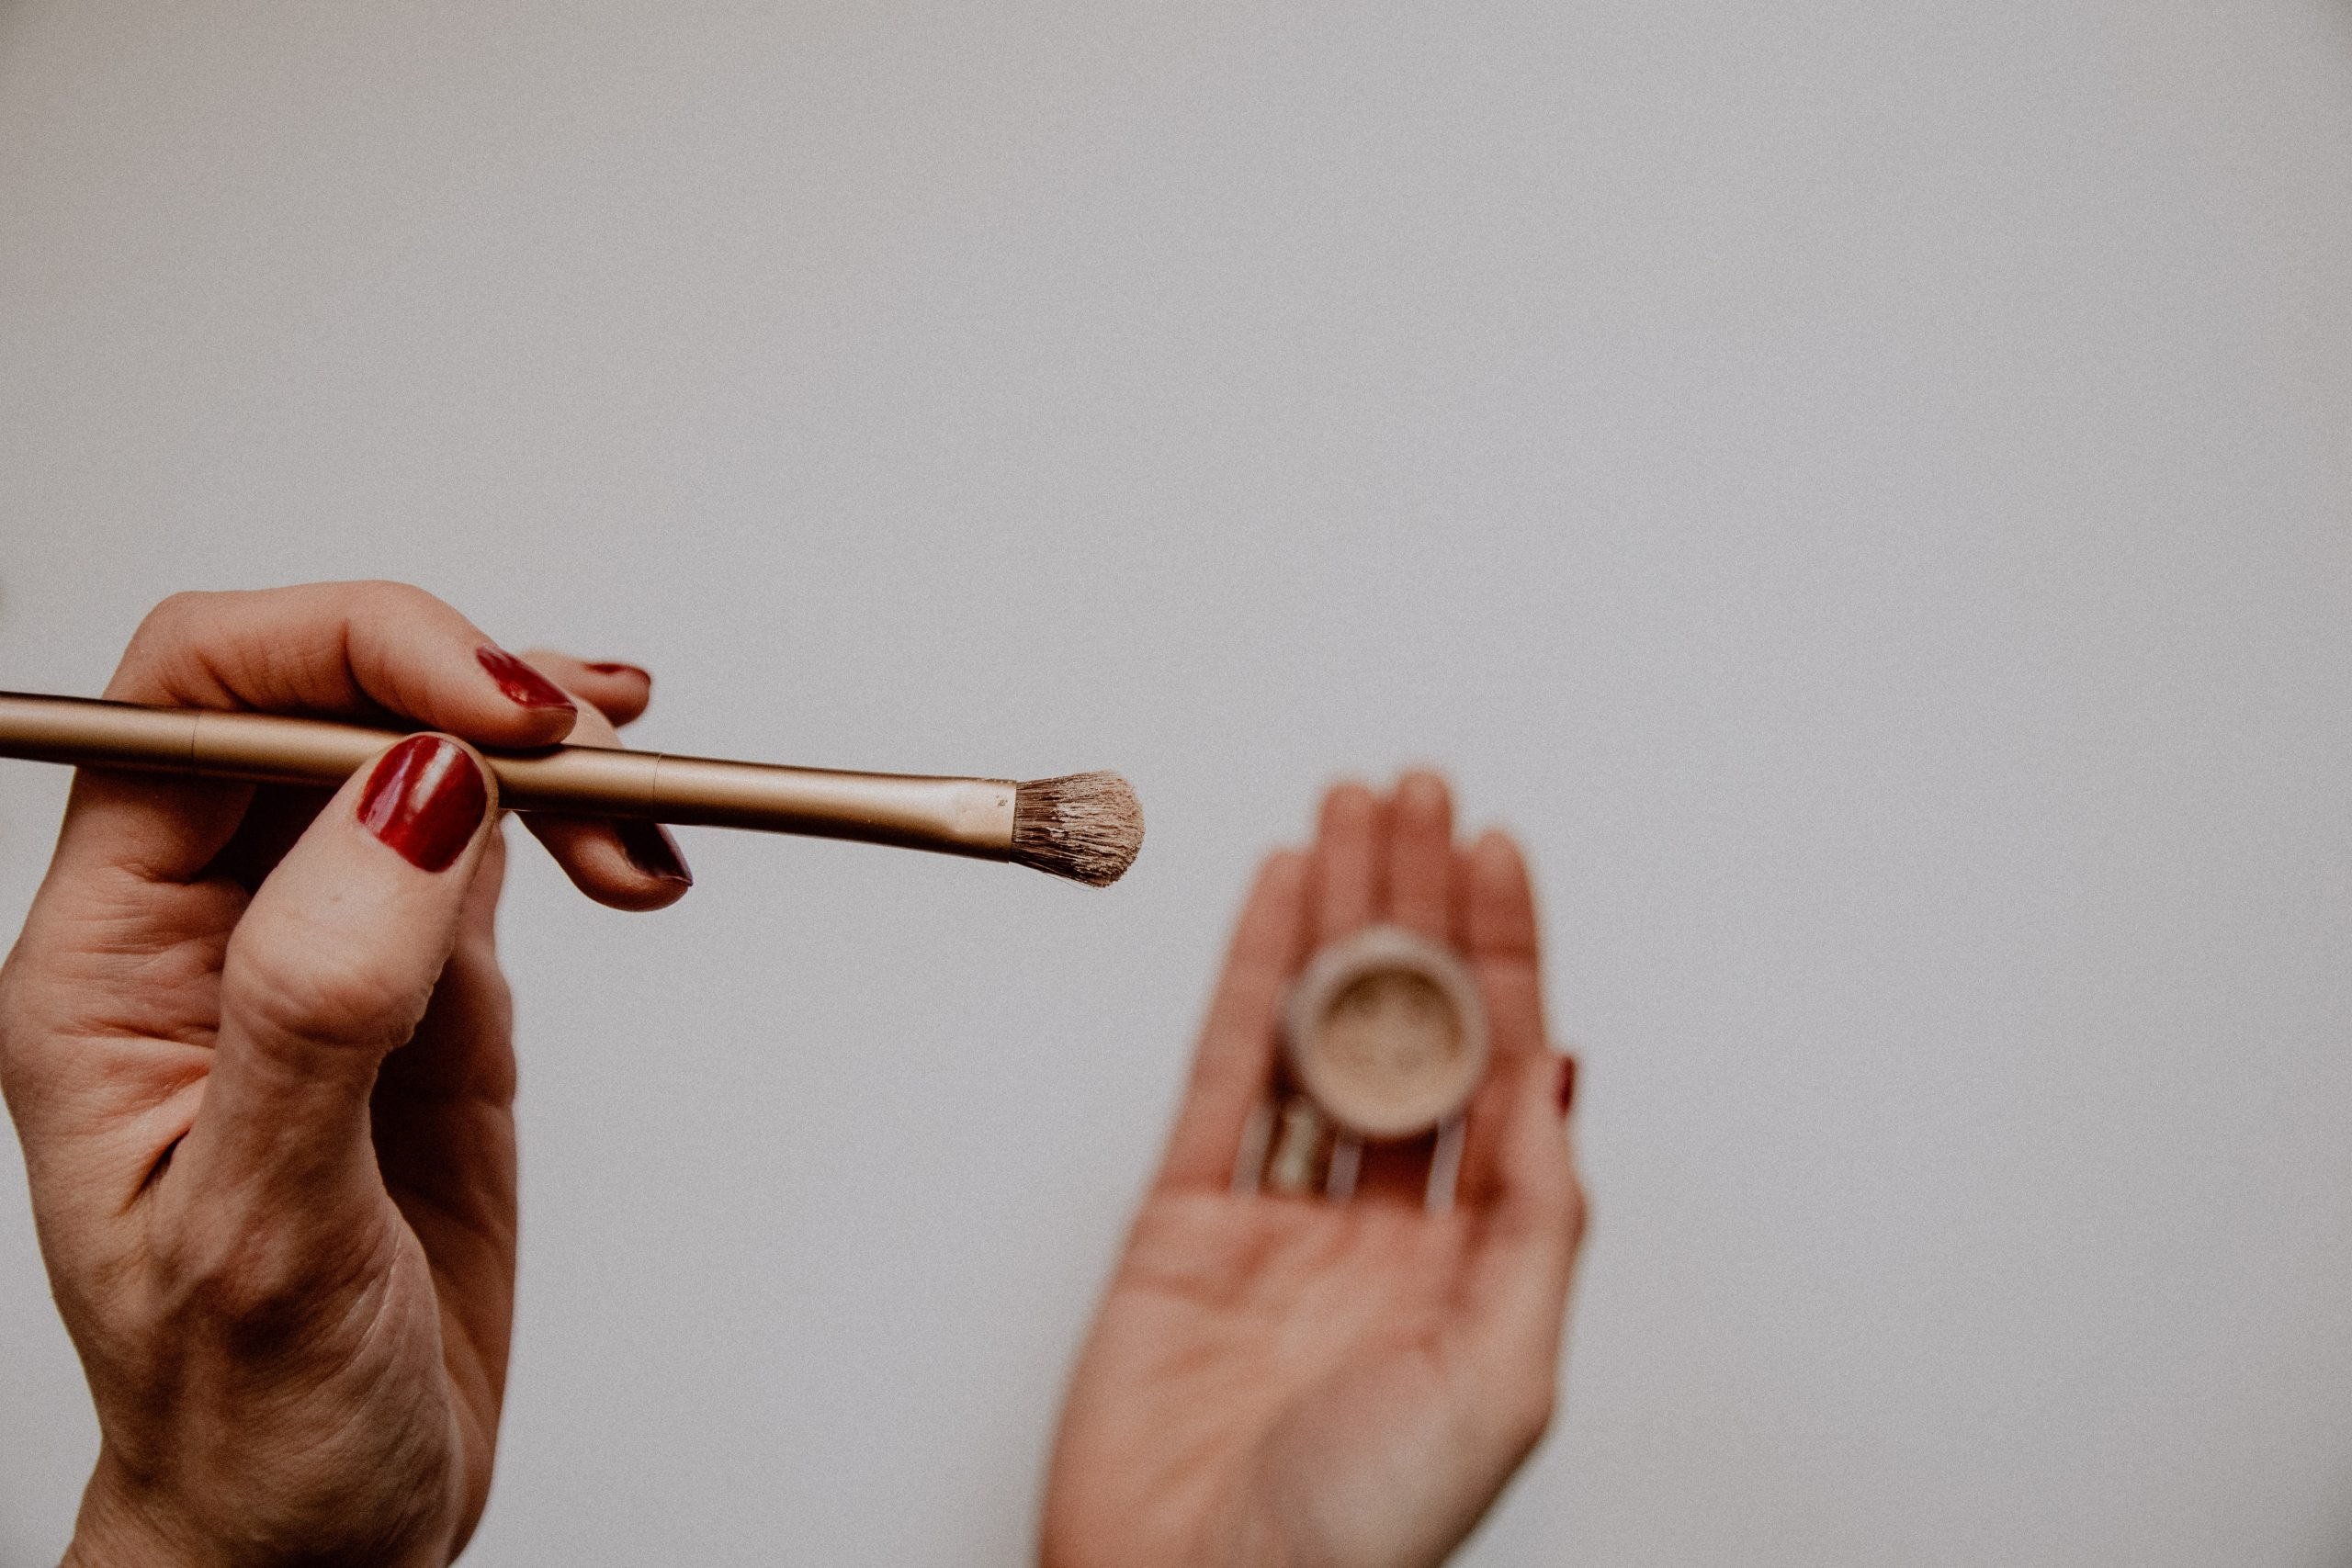 hands holding make-up pot and brush